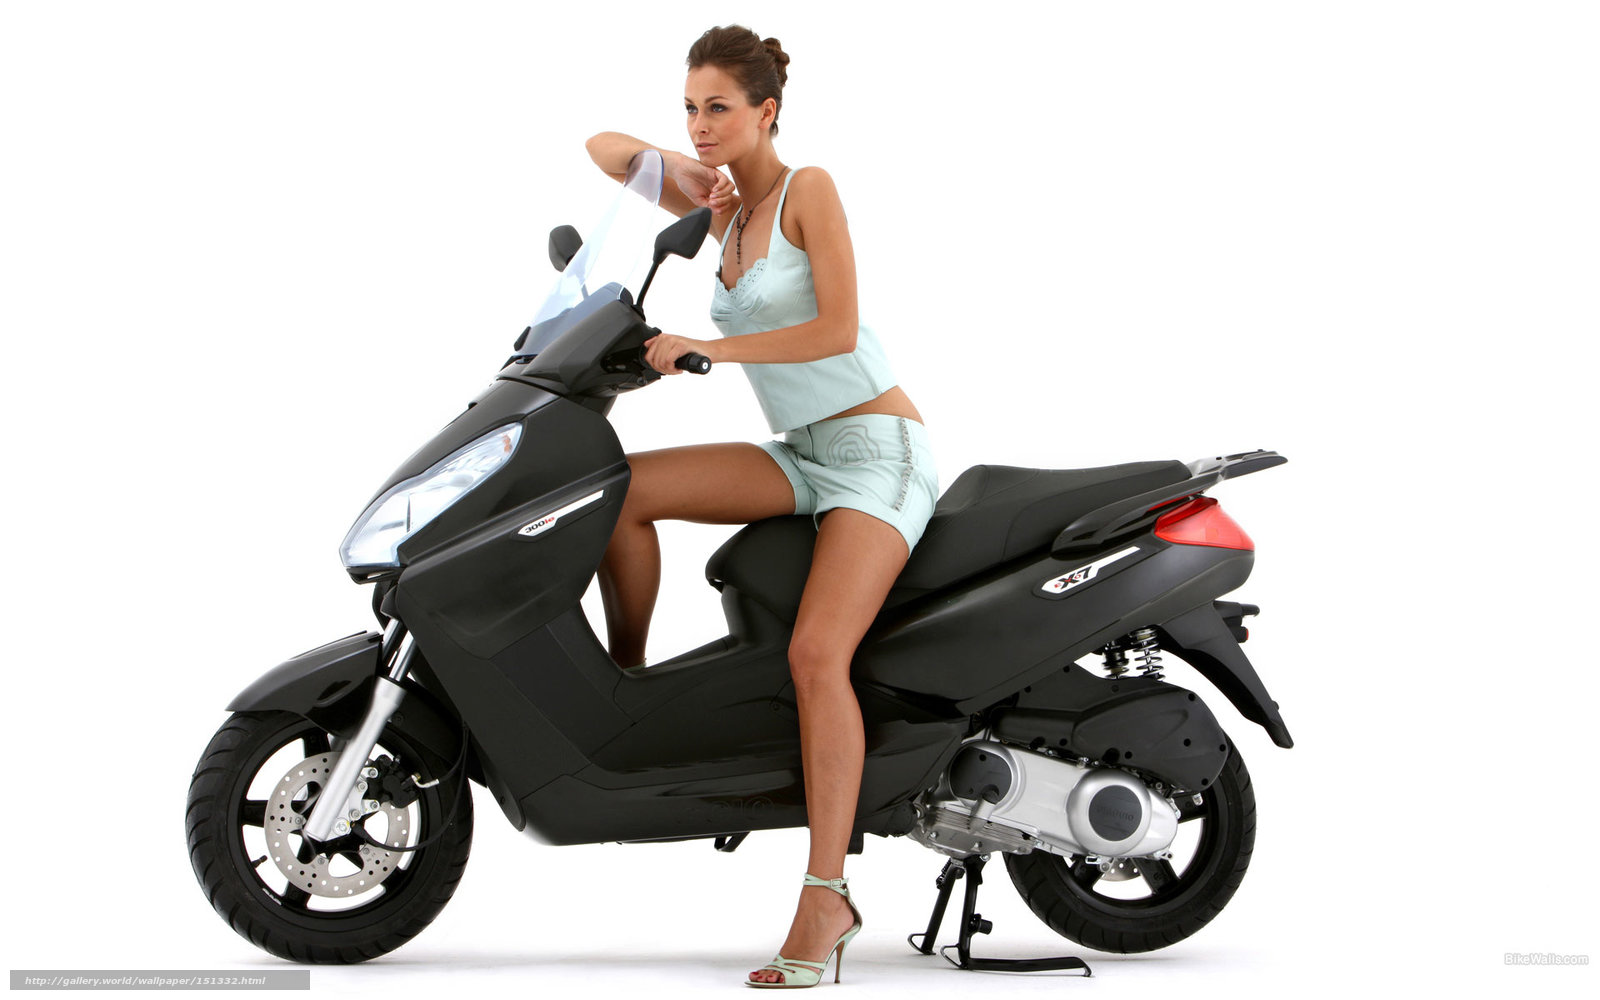 download wallpaper piaggio, x7, x7 300, x7 300 2010 free desktop